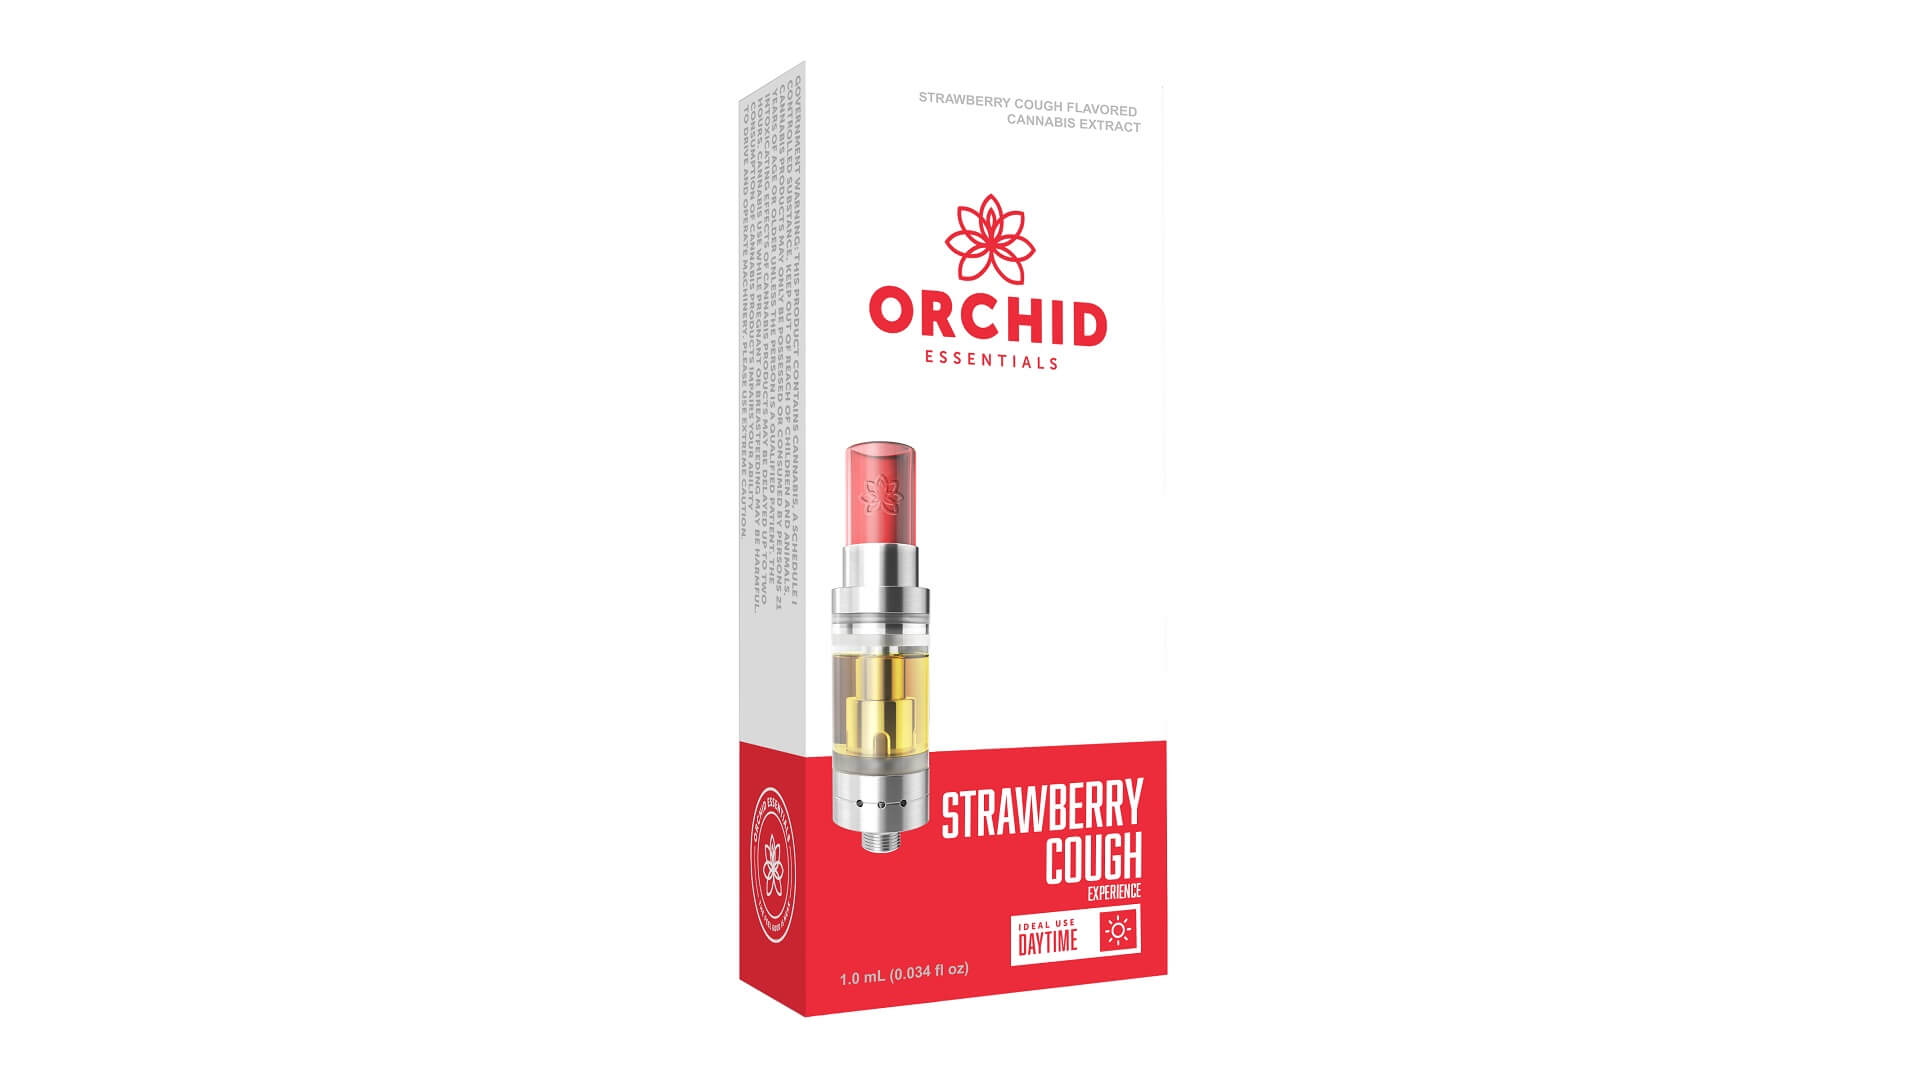 Orchid Essentials Strawberry Cough Cartridge